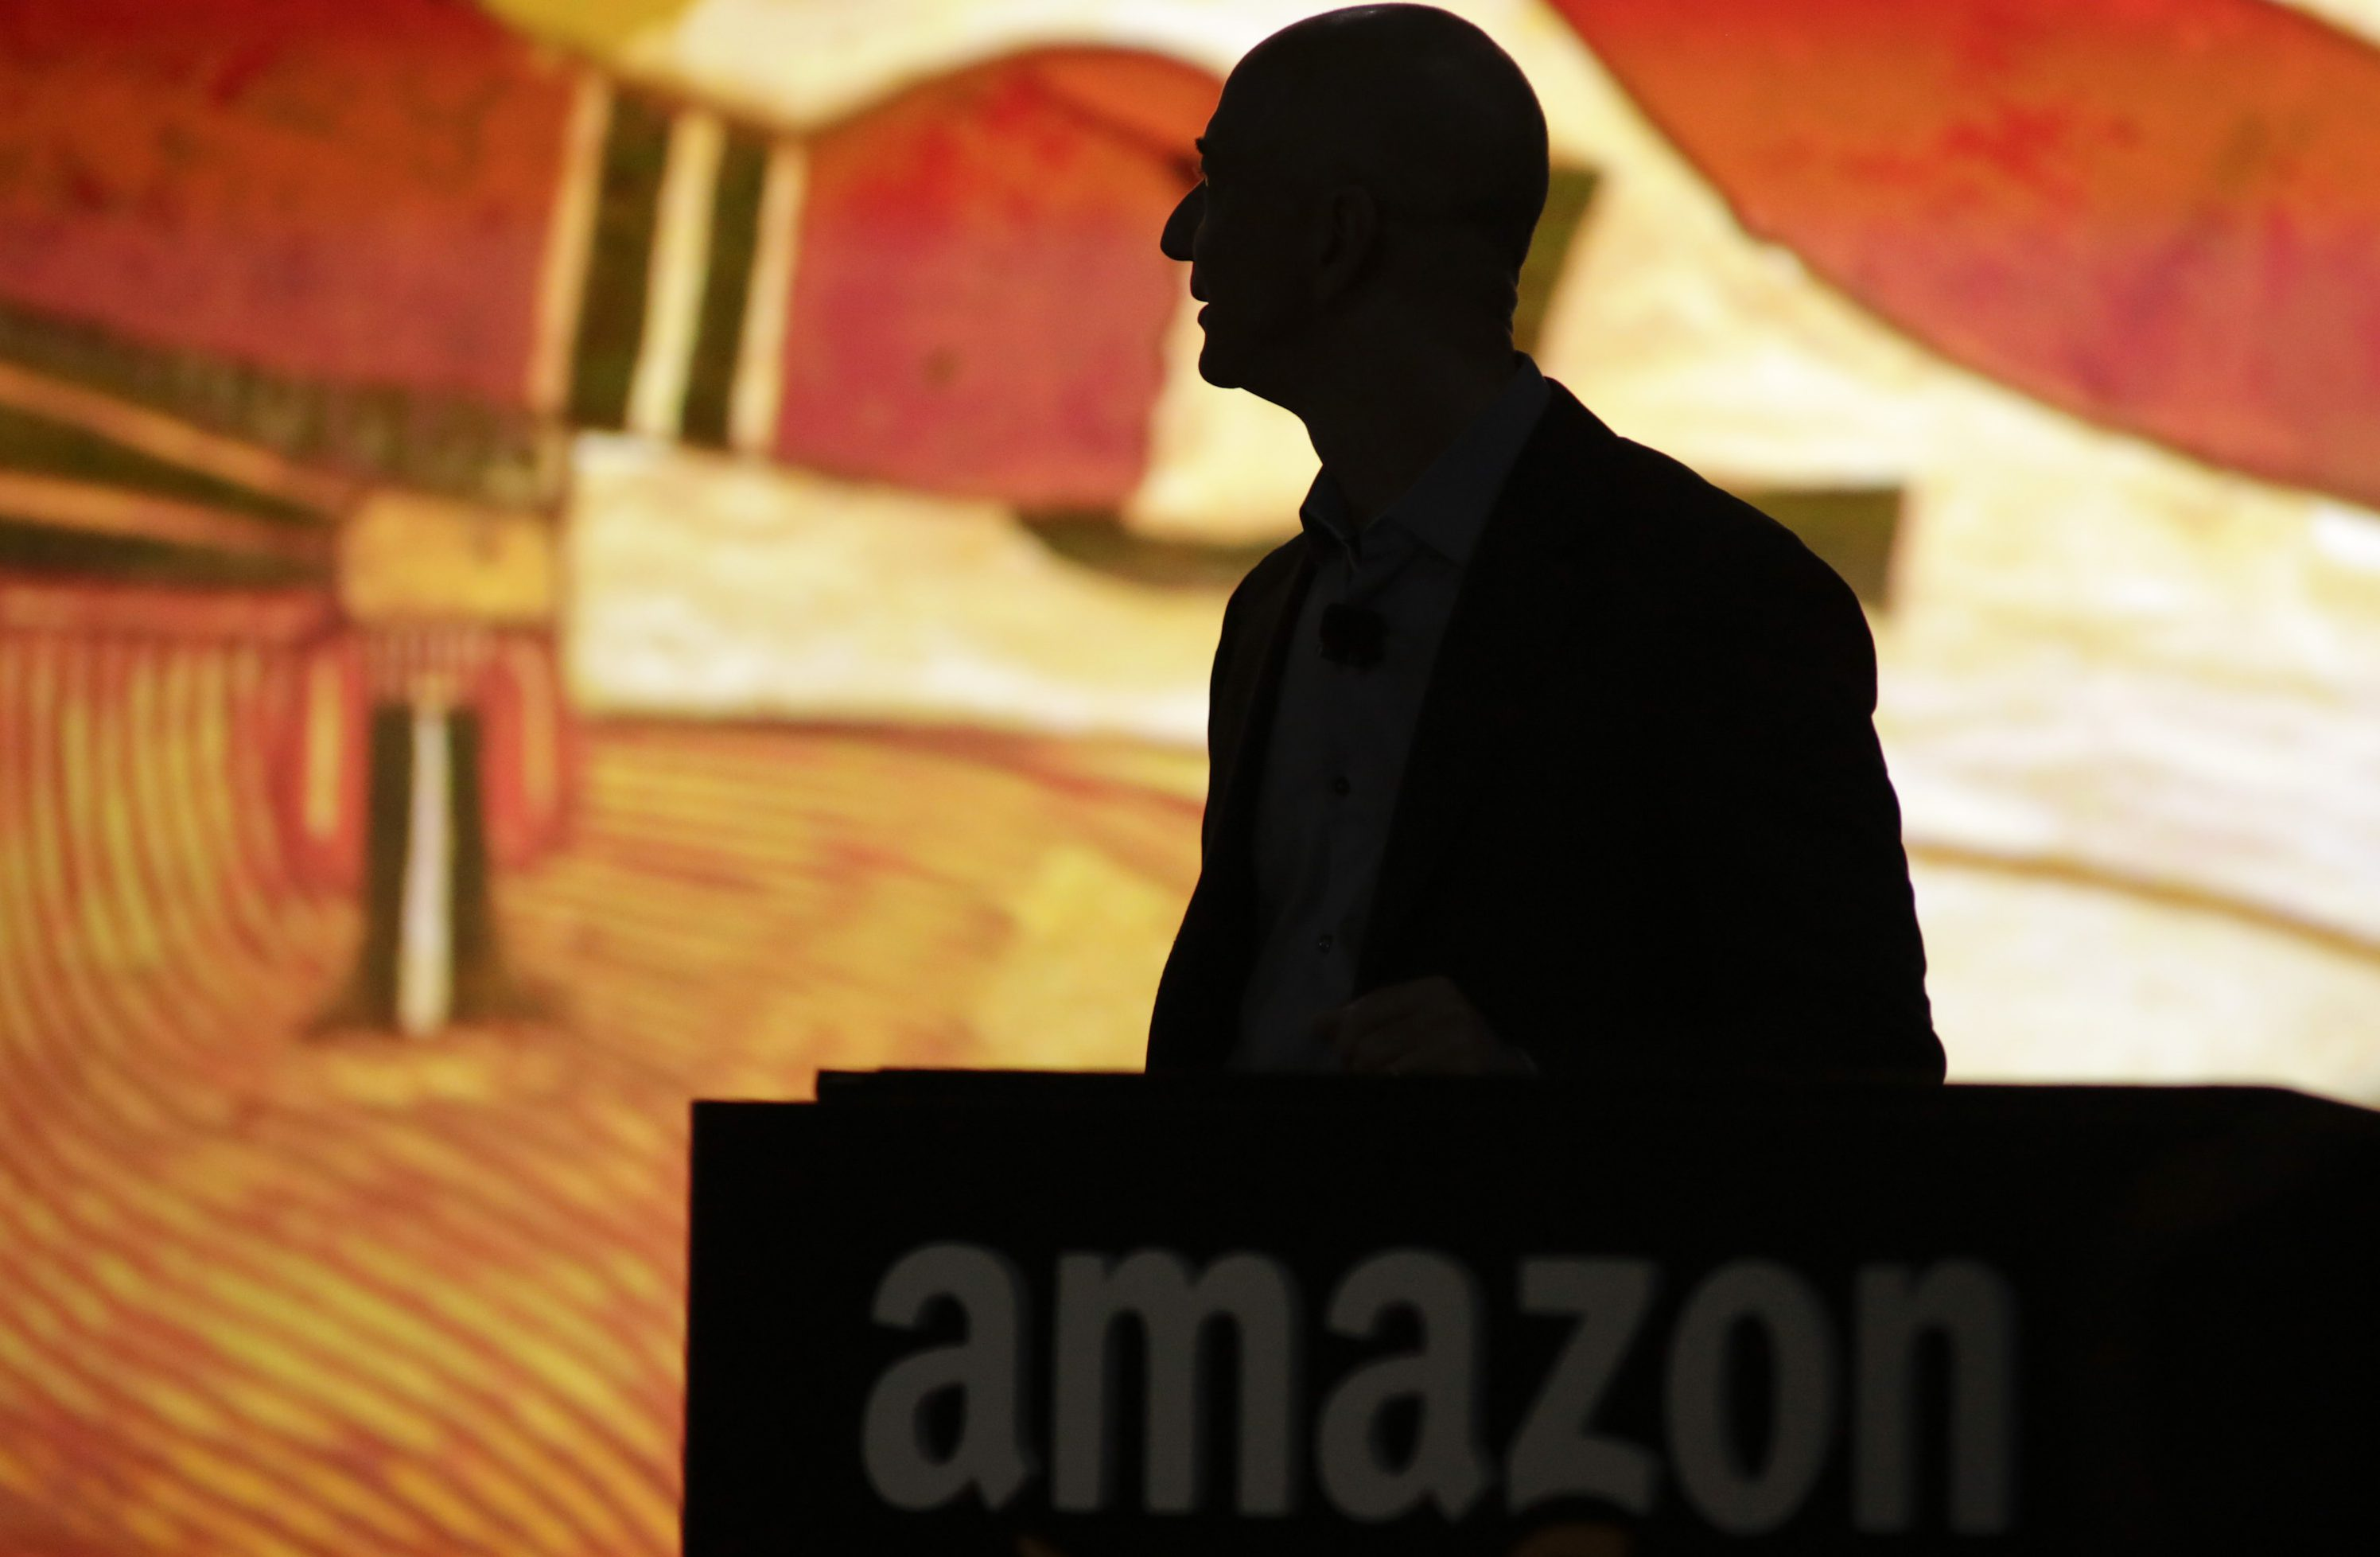 """Amazon CEO Jeff Bezos is silhouetted during a presentation of his company's new Fire smartphone at a news conference in Seattle, Washington June 18, 2014. Bezos unveiled a """"Fire""""smartphone on Wednesday equipped with a 3D-capable screen and the ability to recognize objects, music and TV shows, hoping to stand out in a crowded field dominated by Apple Inc and Samsung Electronics."""